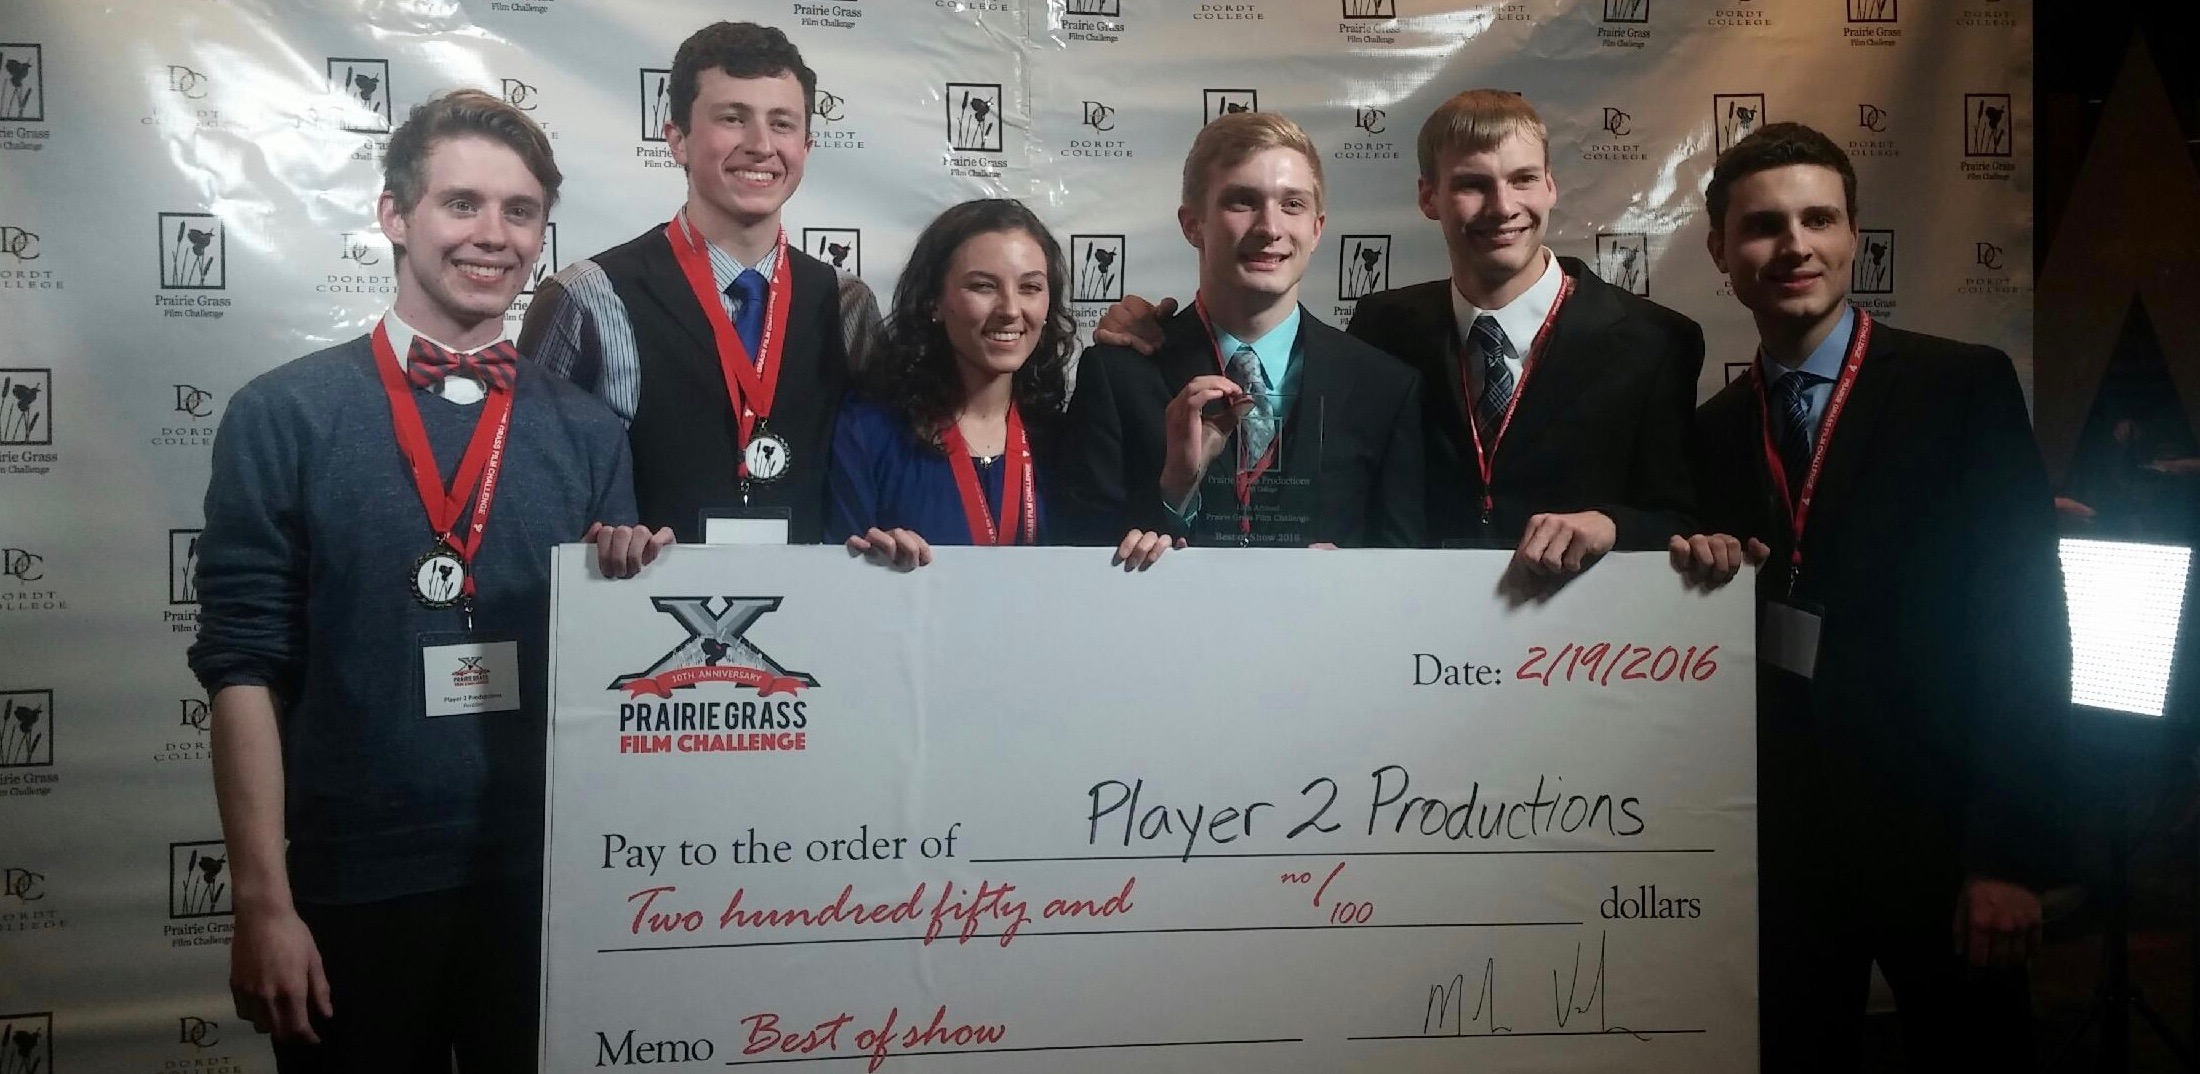 Player 2 Productions 2016 team (Nate, Cory, Annie,Ben, Josh, and Jacob) pose in front of the PGFC2016 backdrop with their newly-won check.